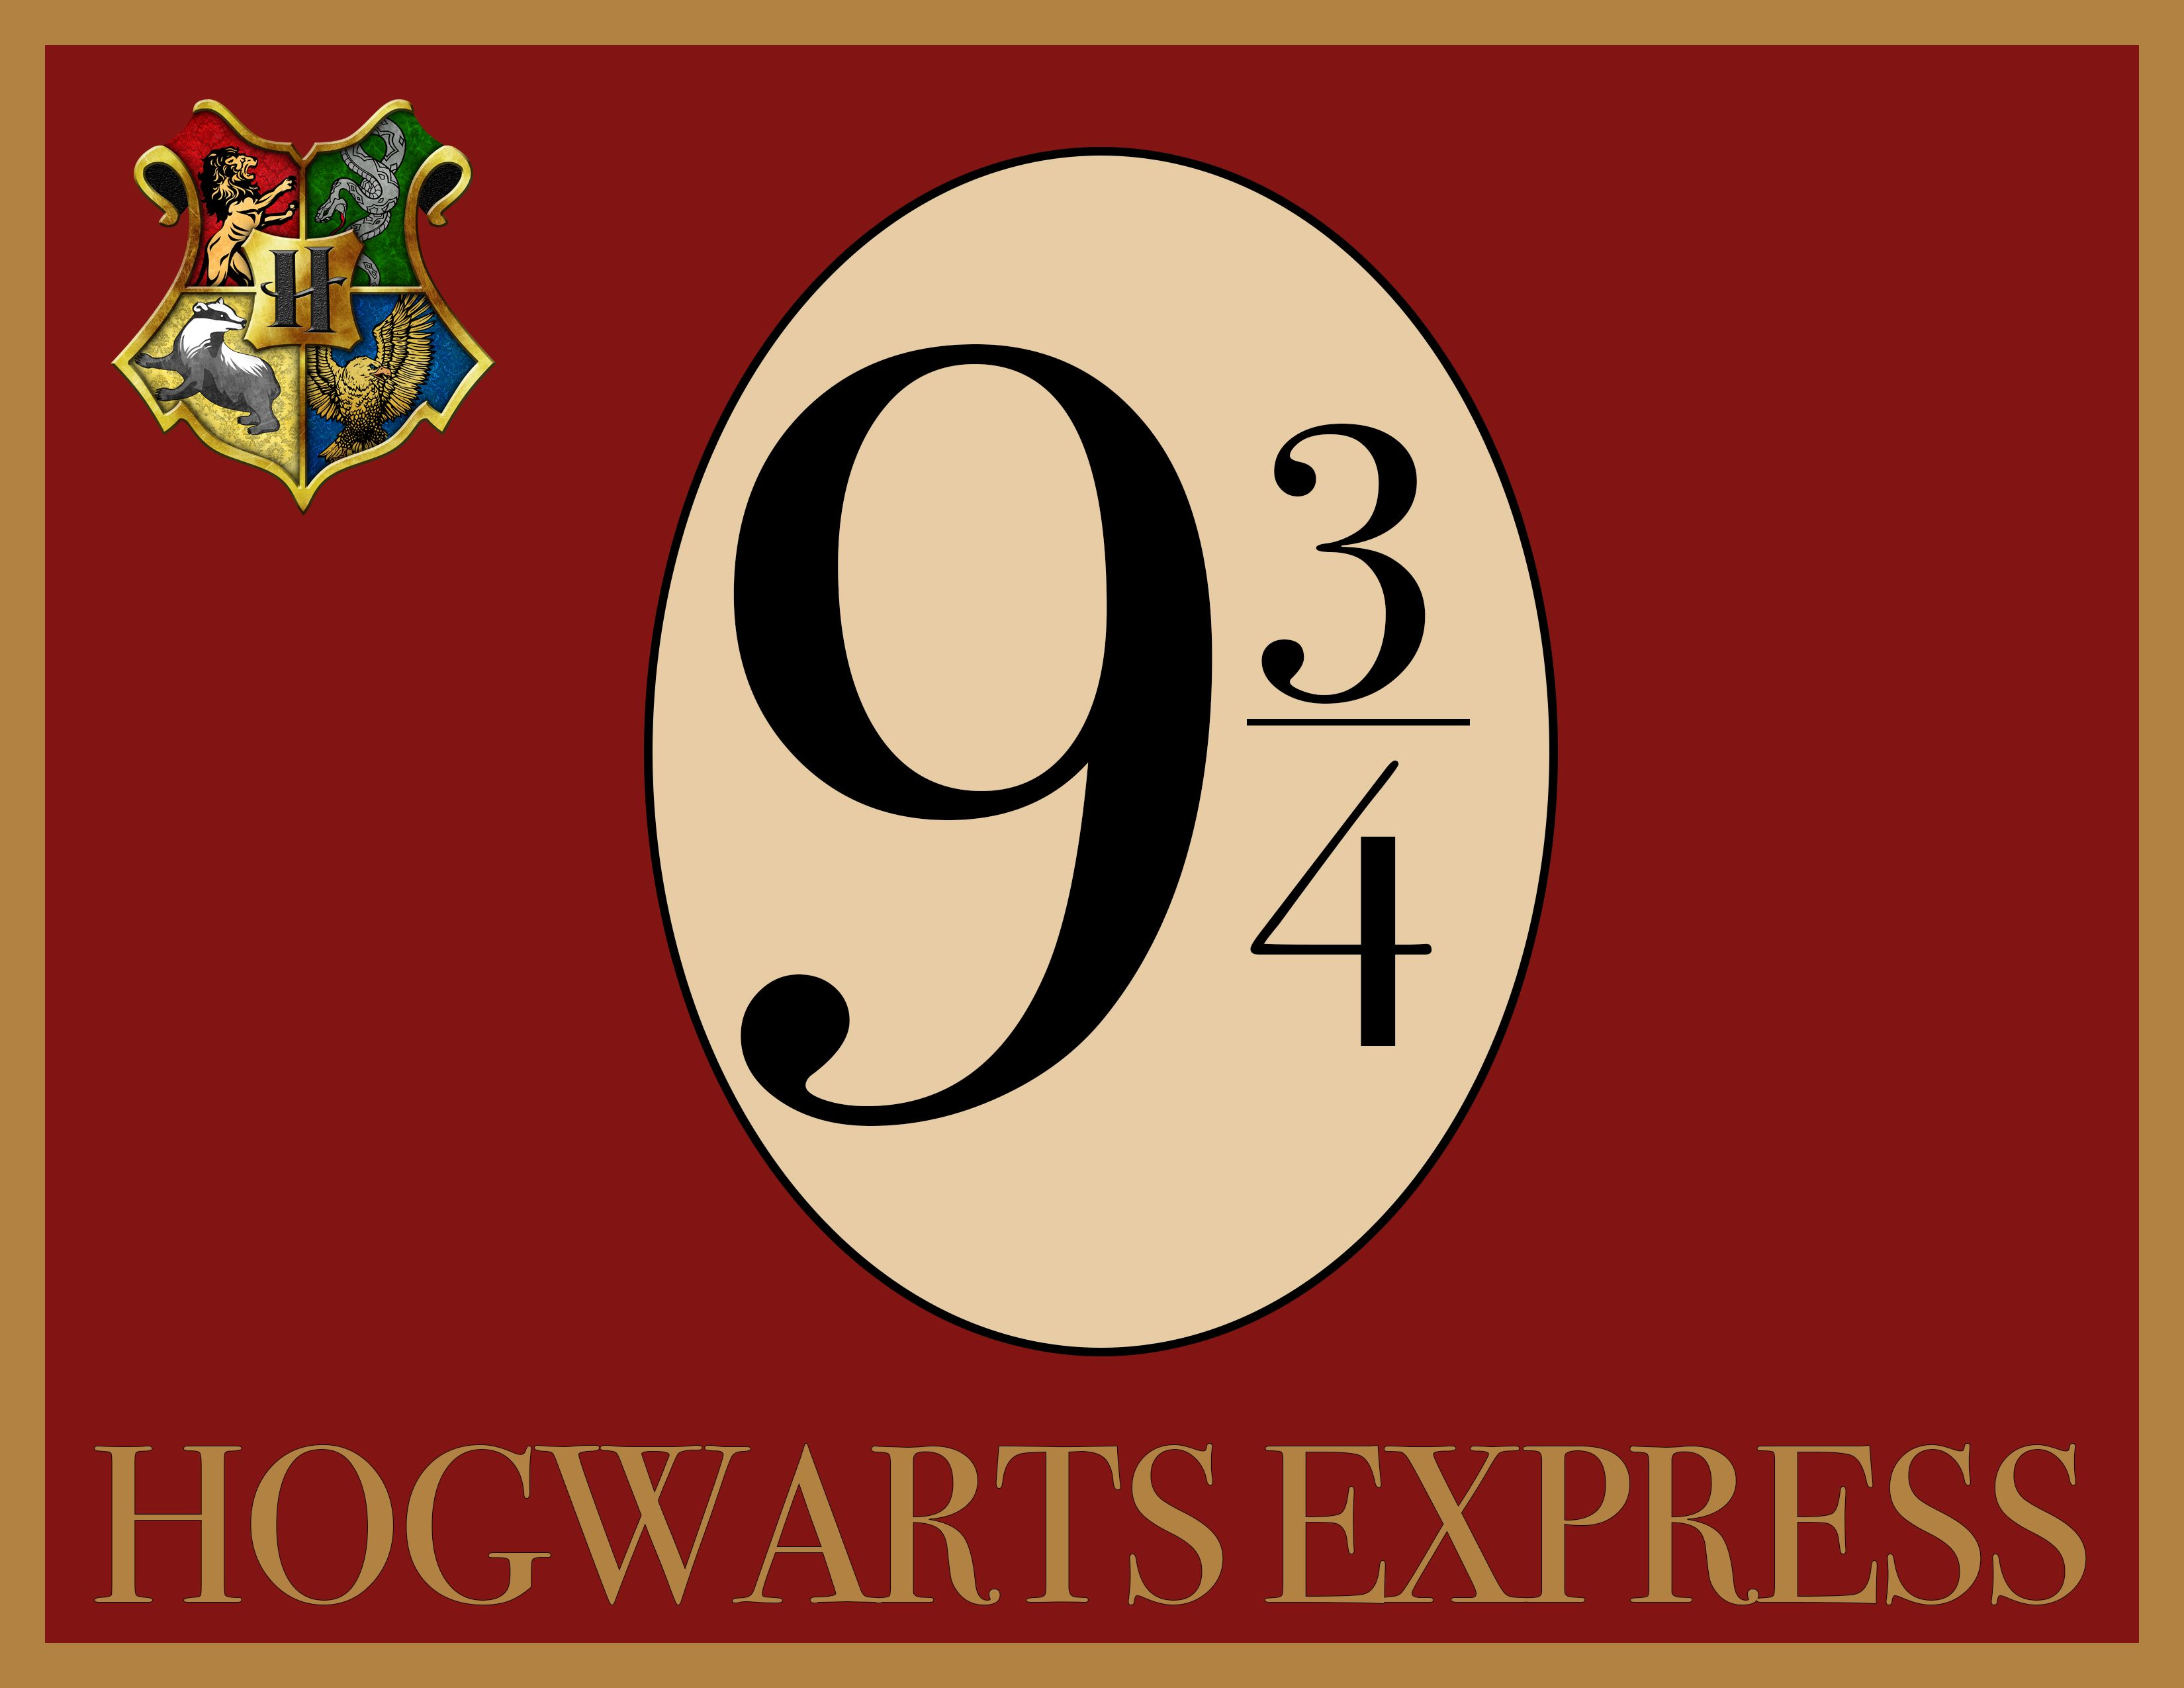 Free Harry Potter Printables And Decorations - Jonesing2Create - Free Harry Potter Printable Signs